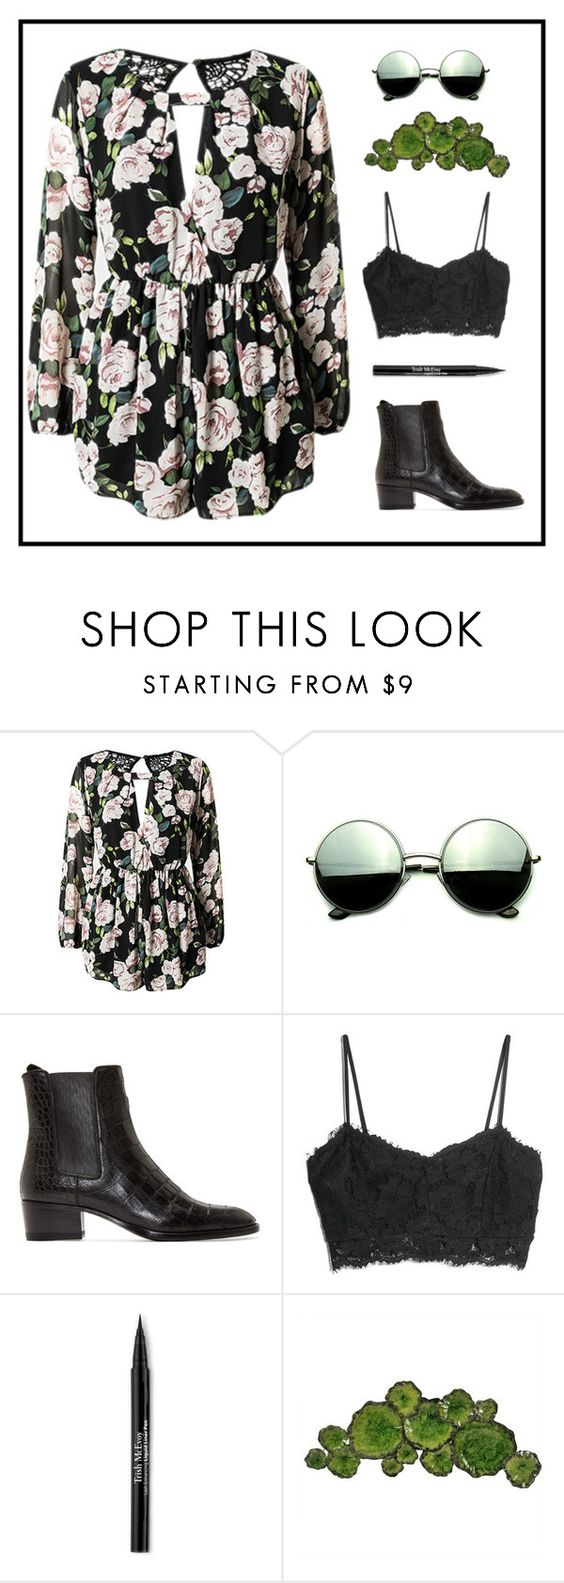 """""""Untitled #646"""" by zirax ❤ liked on Polyvore featuring Revo, Yves Saint Laurent, MANGO, Trish McEvoy and Moe's Home Collection"""